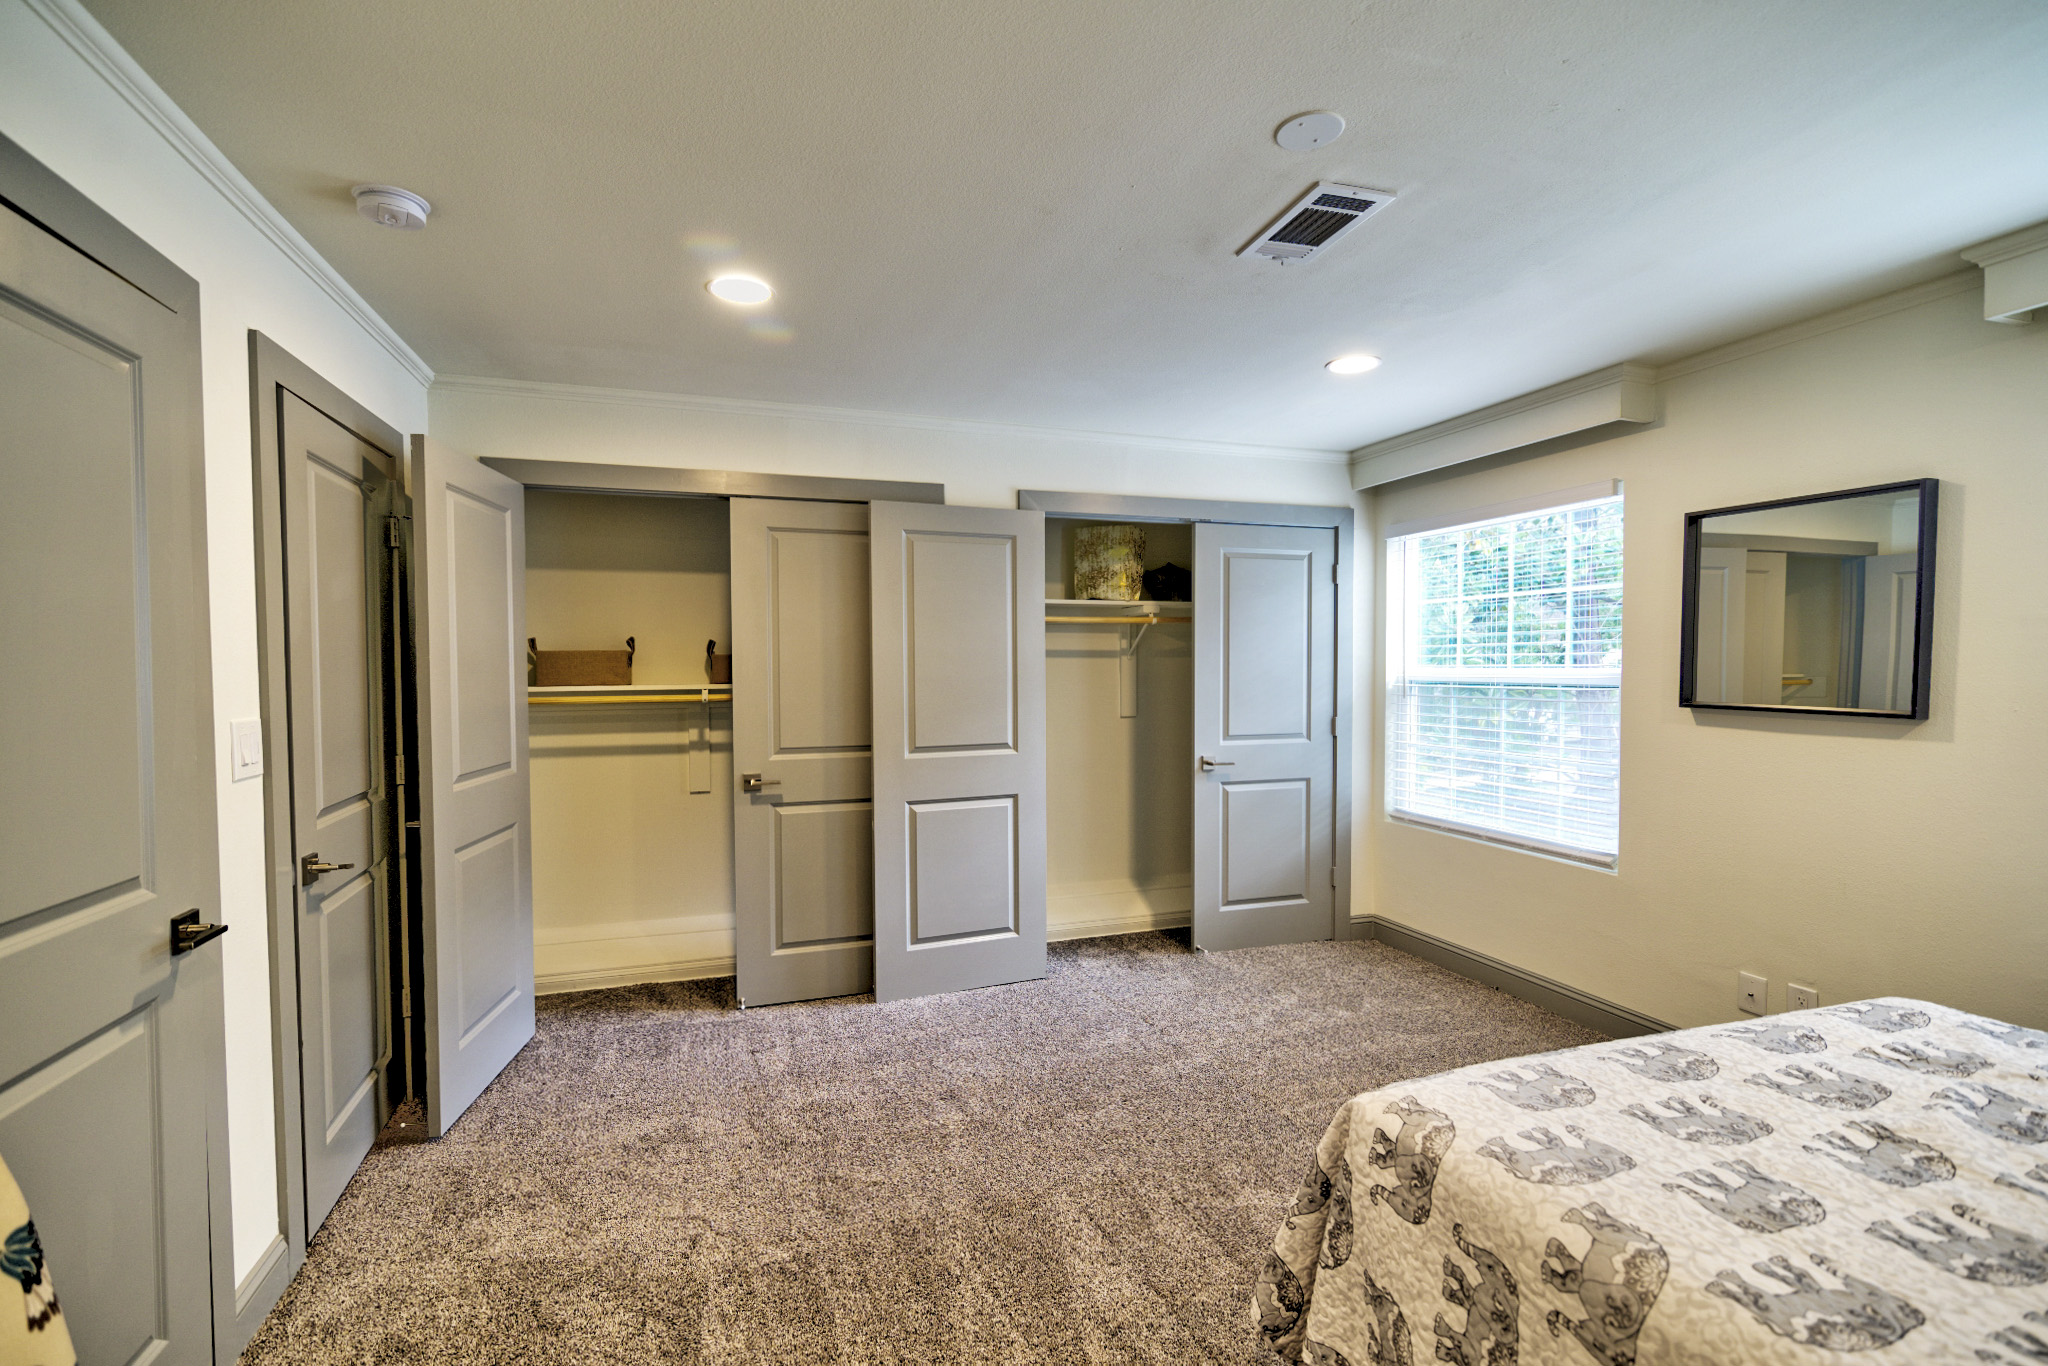 Two Bedroom / two and a half bath townhome